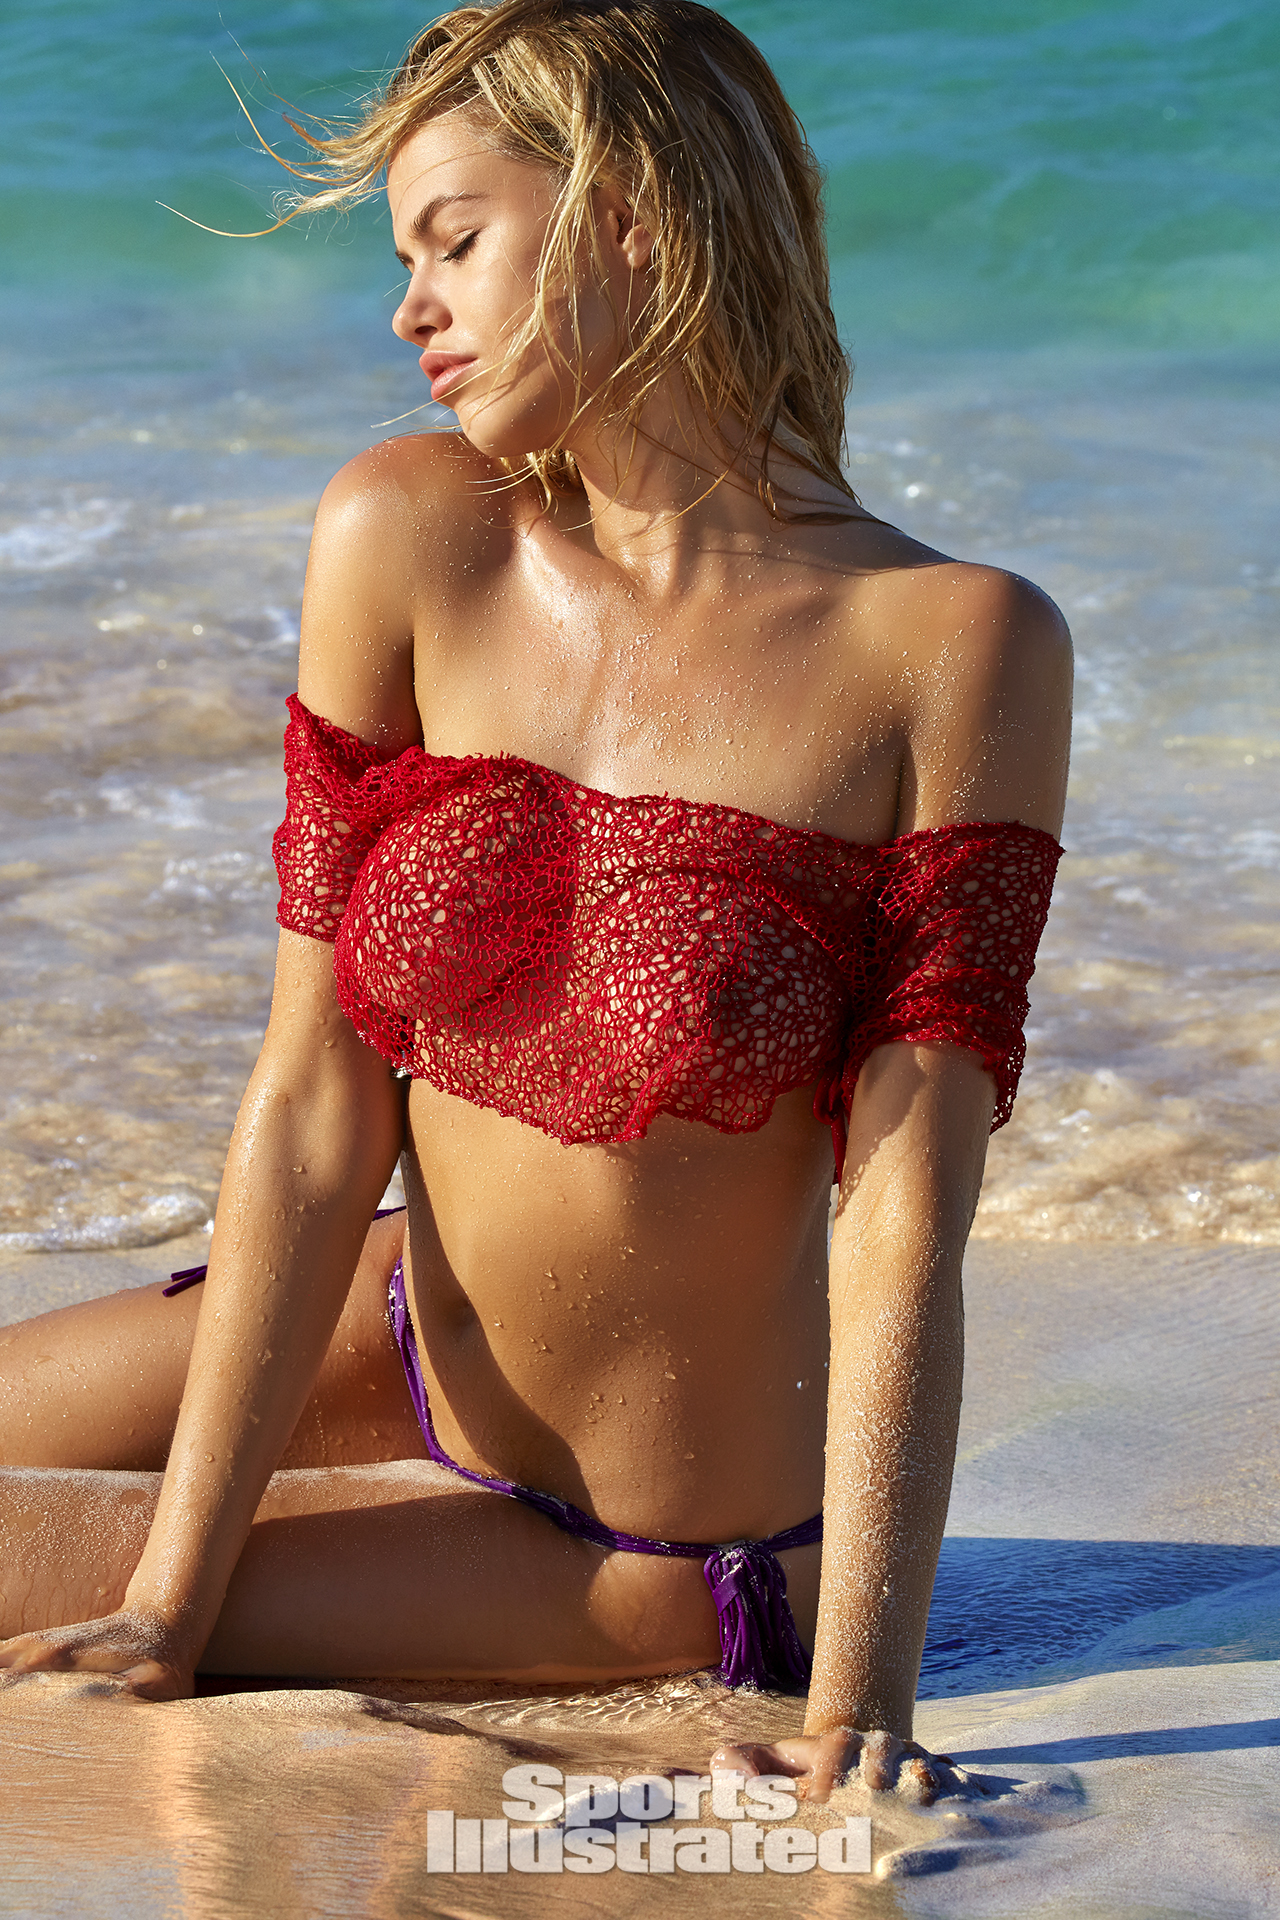 Hailey Clauson was photographed by James Macari in Turks & Caicos. Top by Heidi Fish. Swimsuit by MIKOH.